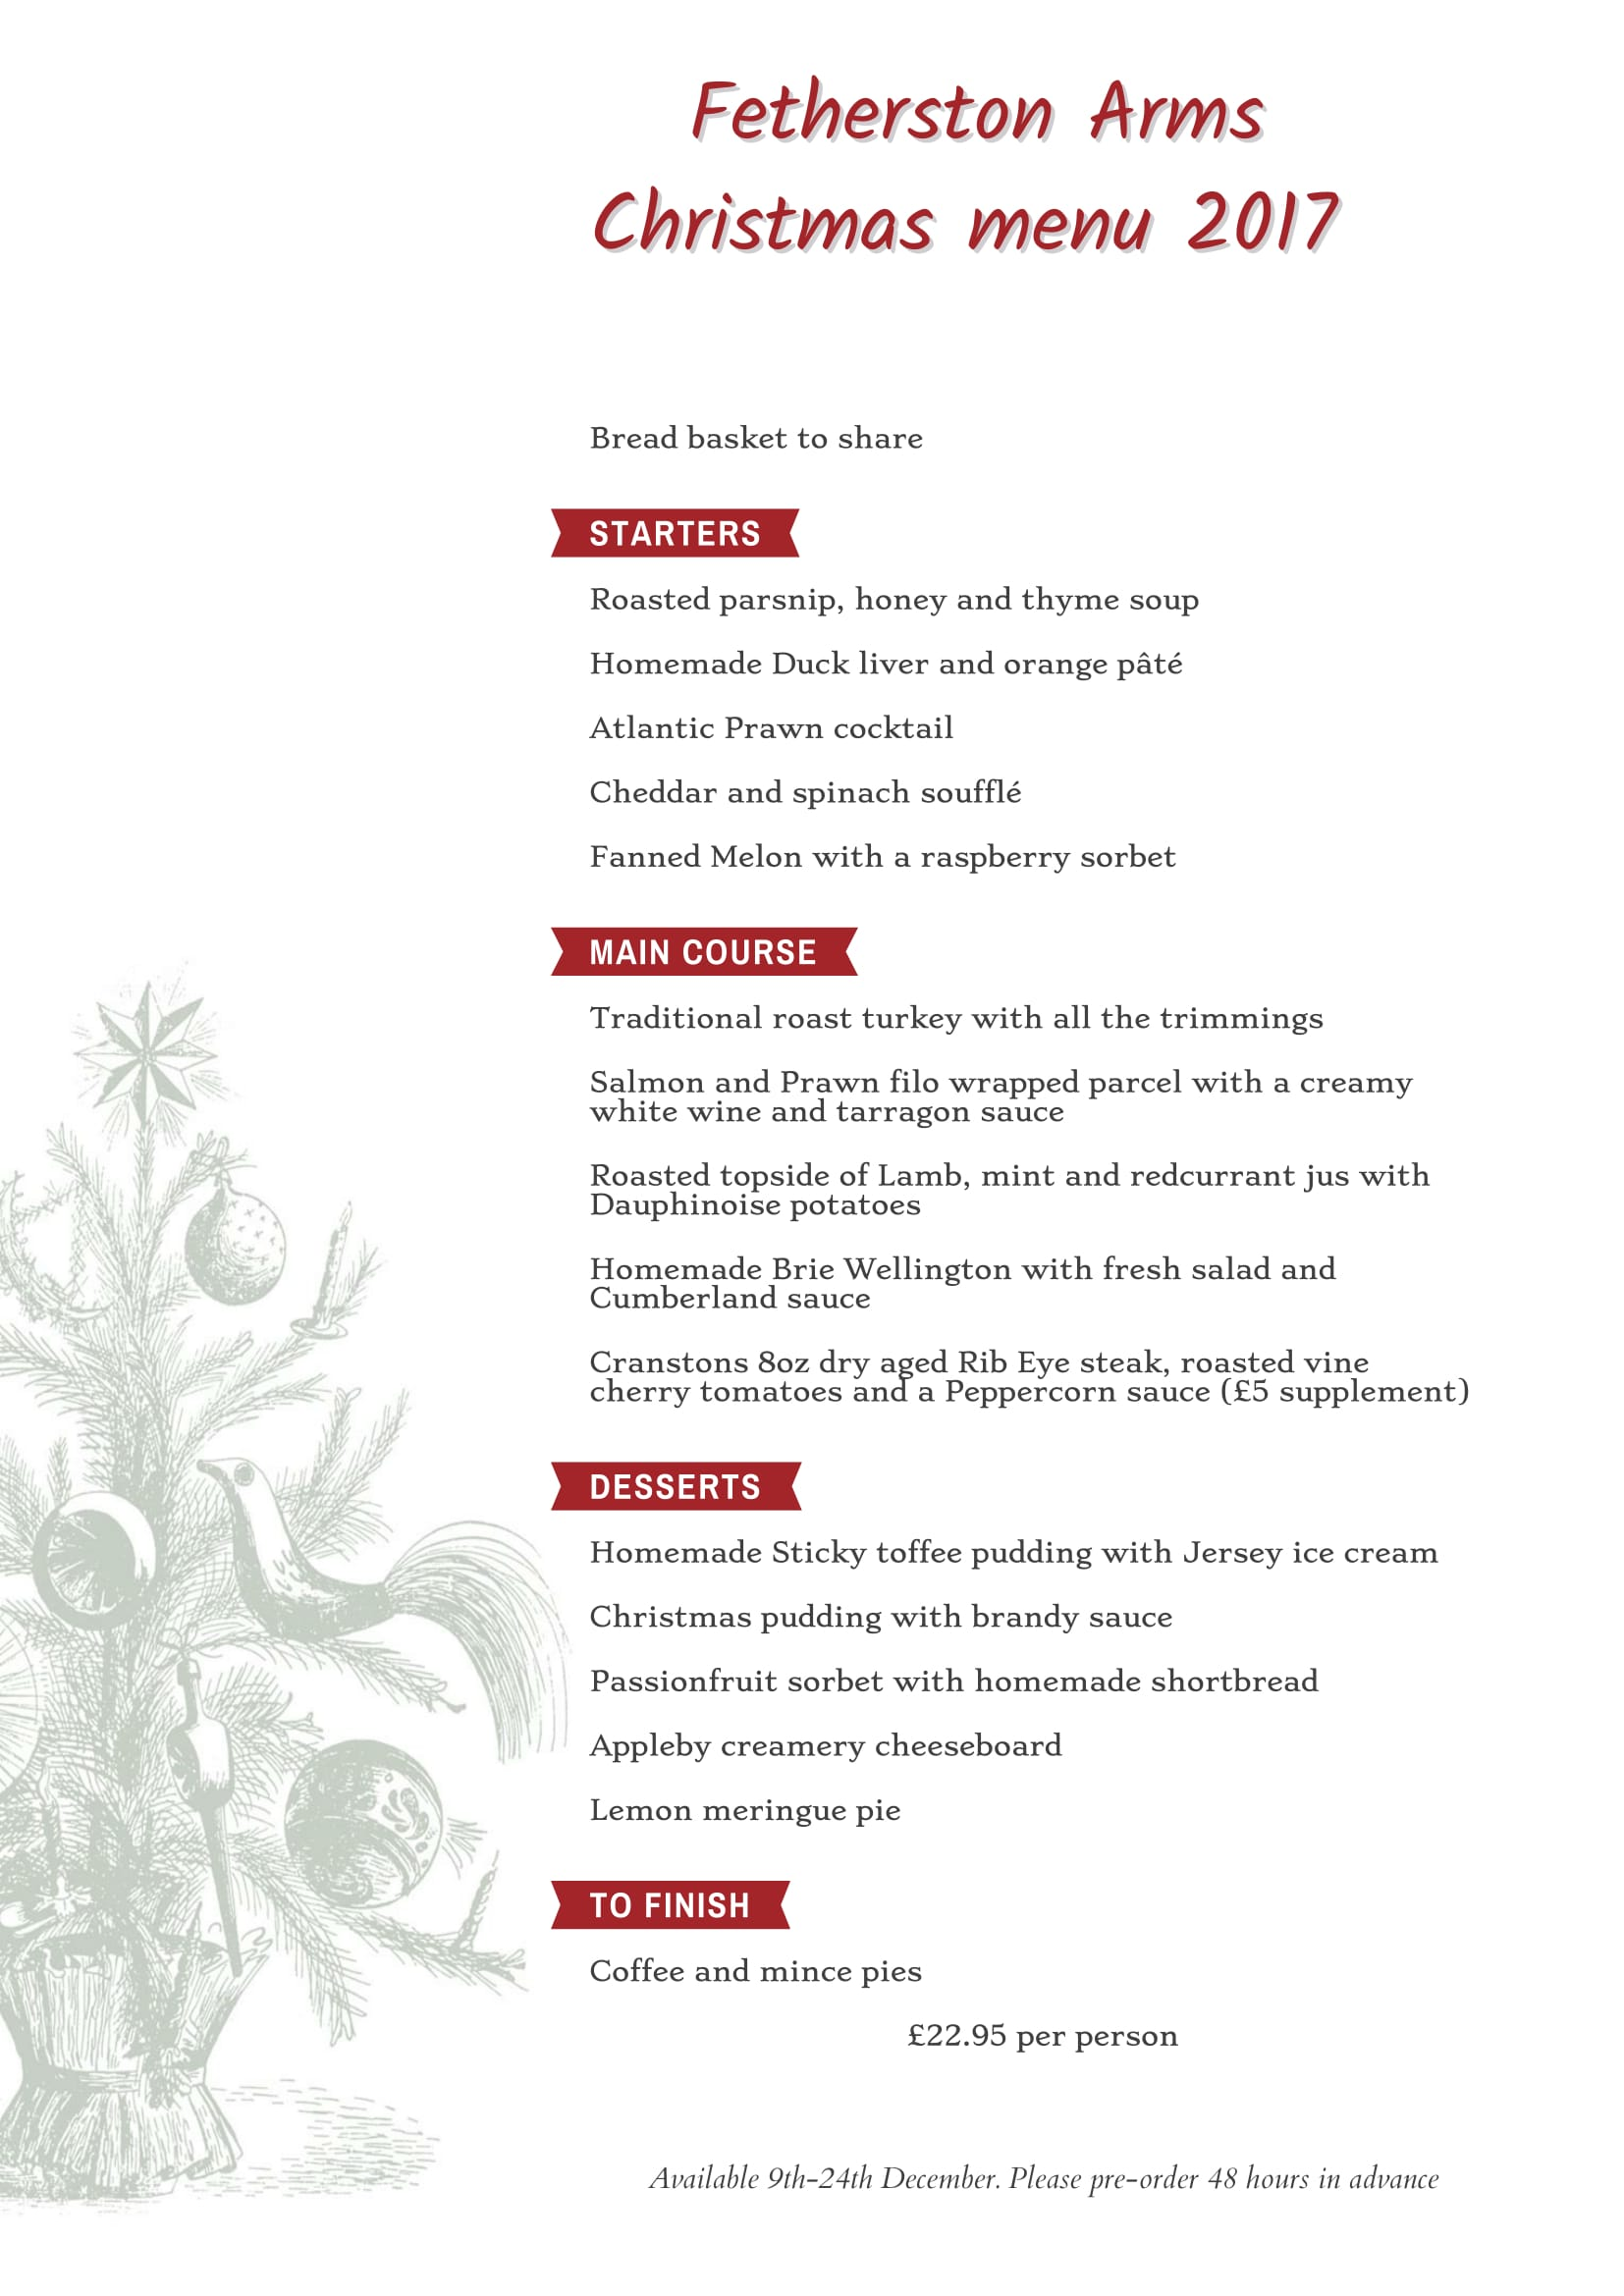 The Fetherstone Arms Christmas Menu 2017-1